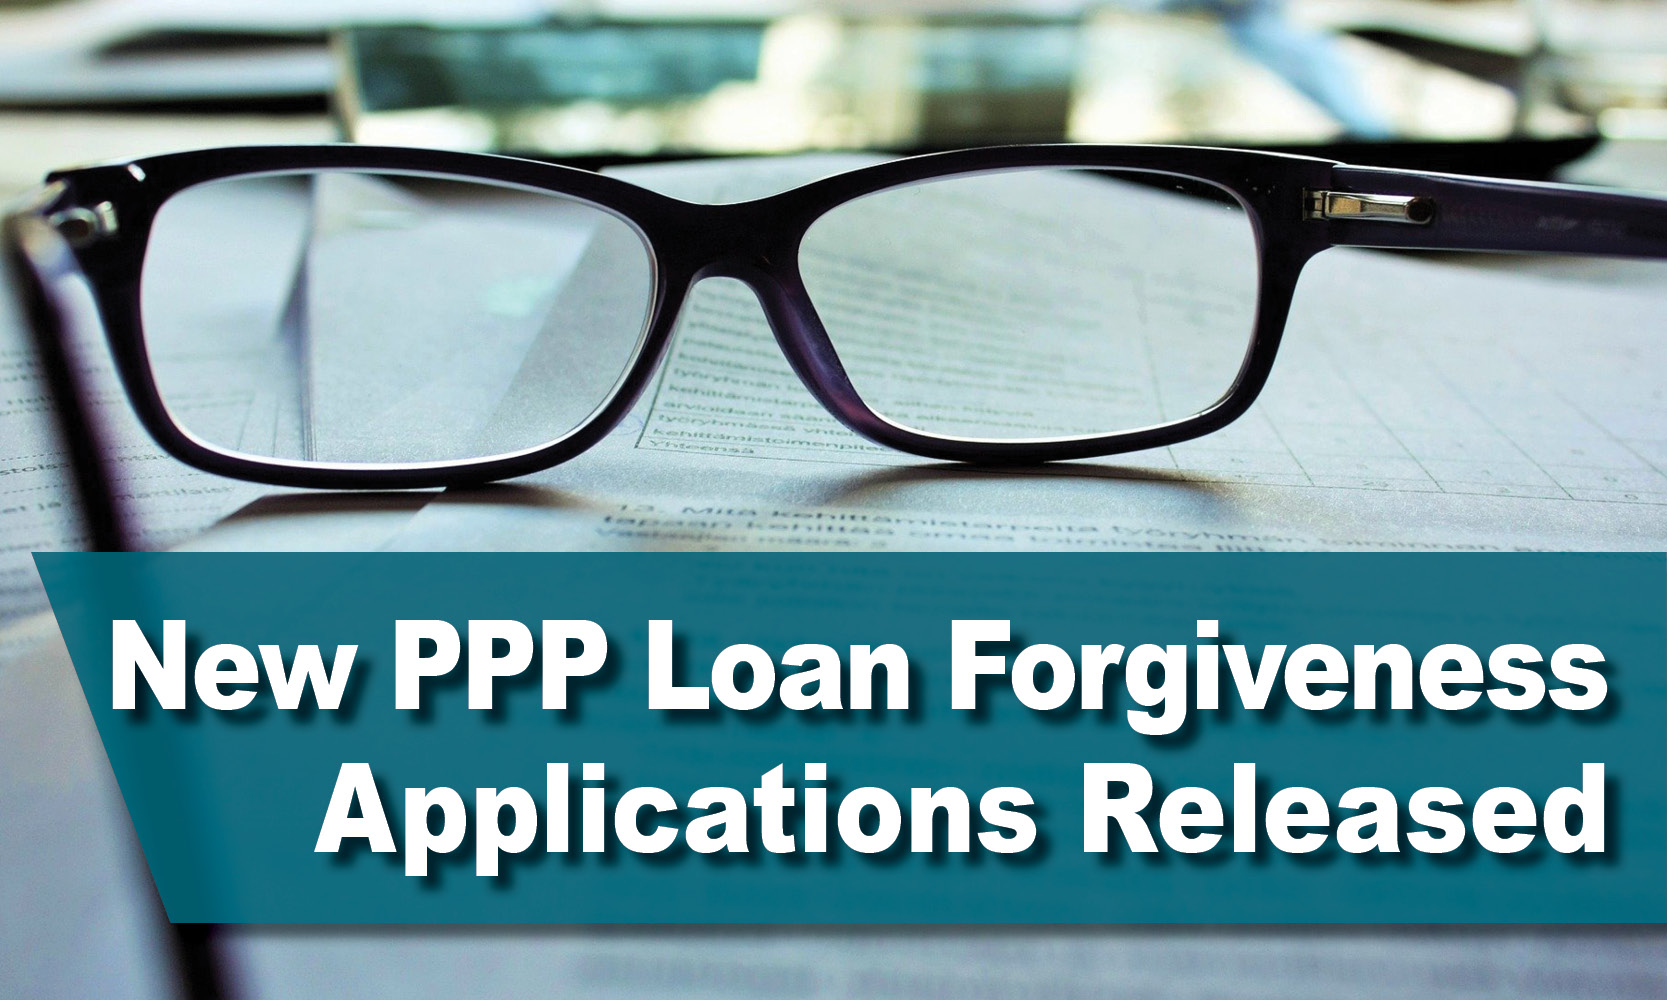 New PPP Loan Forgiveness Applications Released